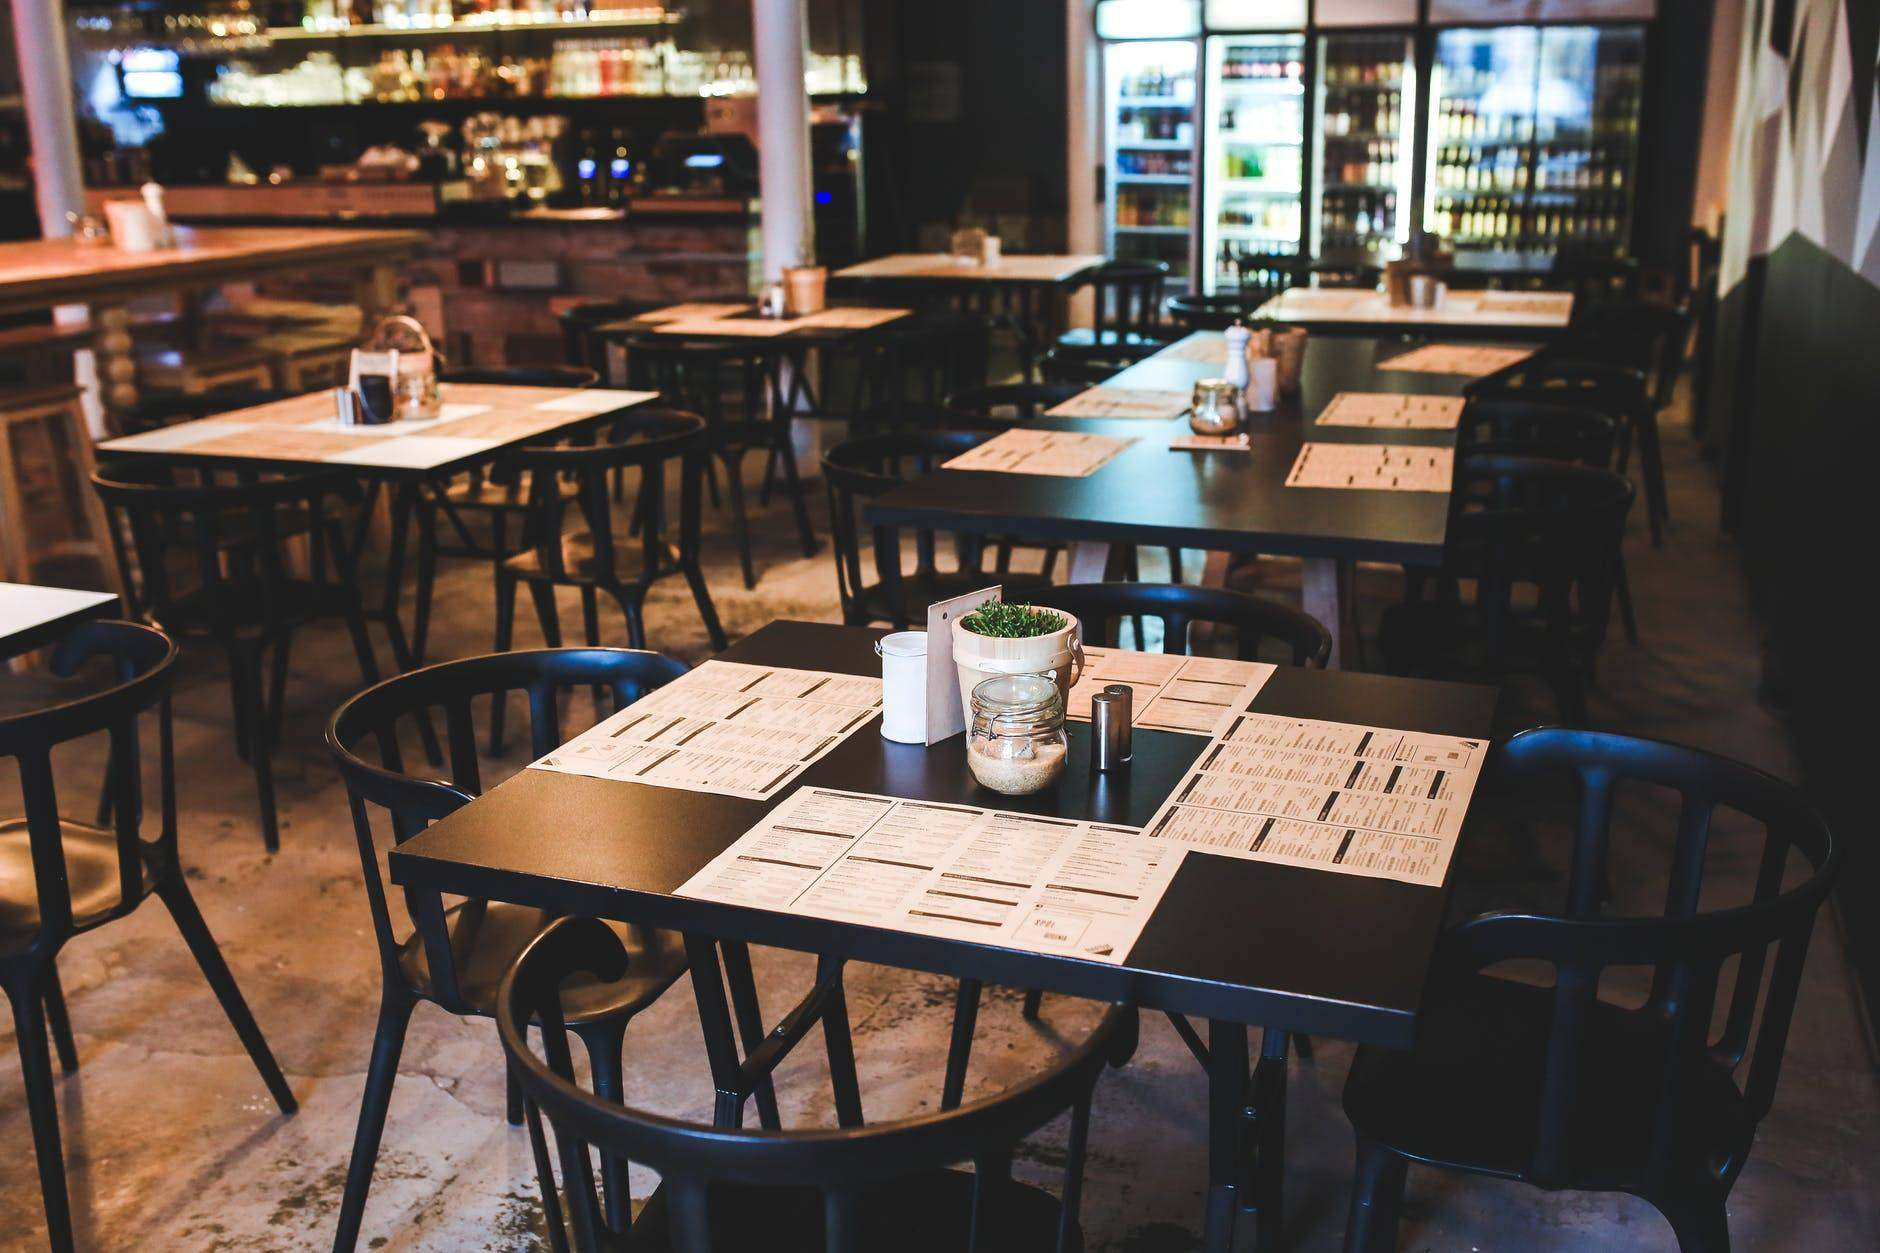 5 Ways To Make Your Bar or Restaurant Stand Out from the Crowd